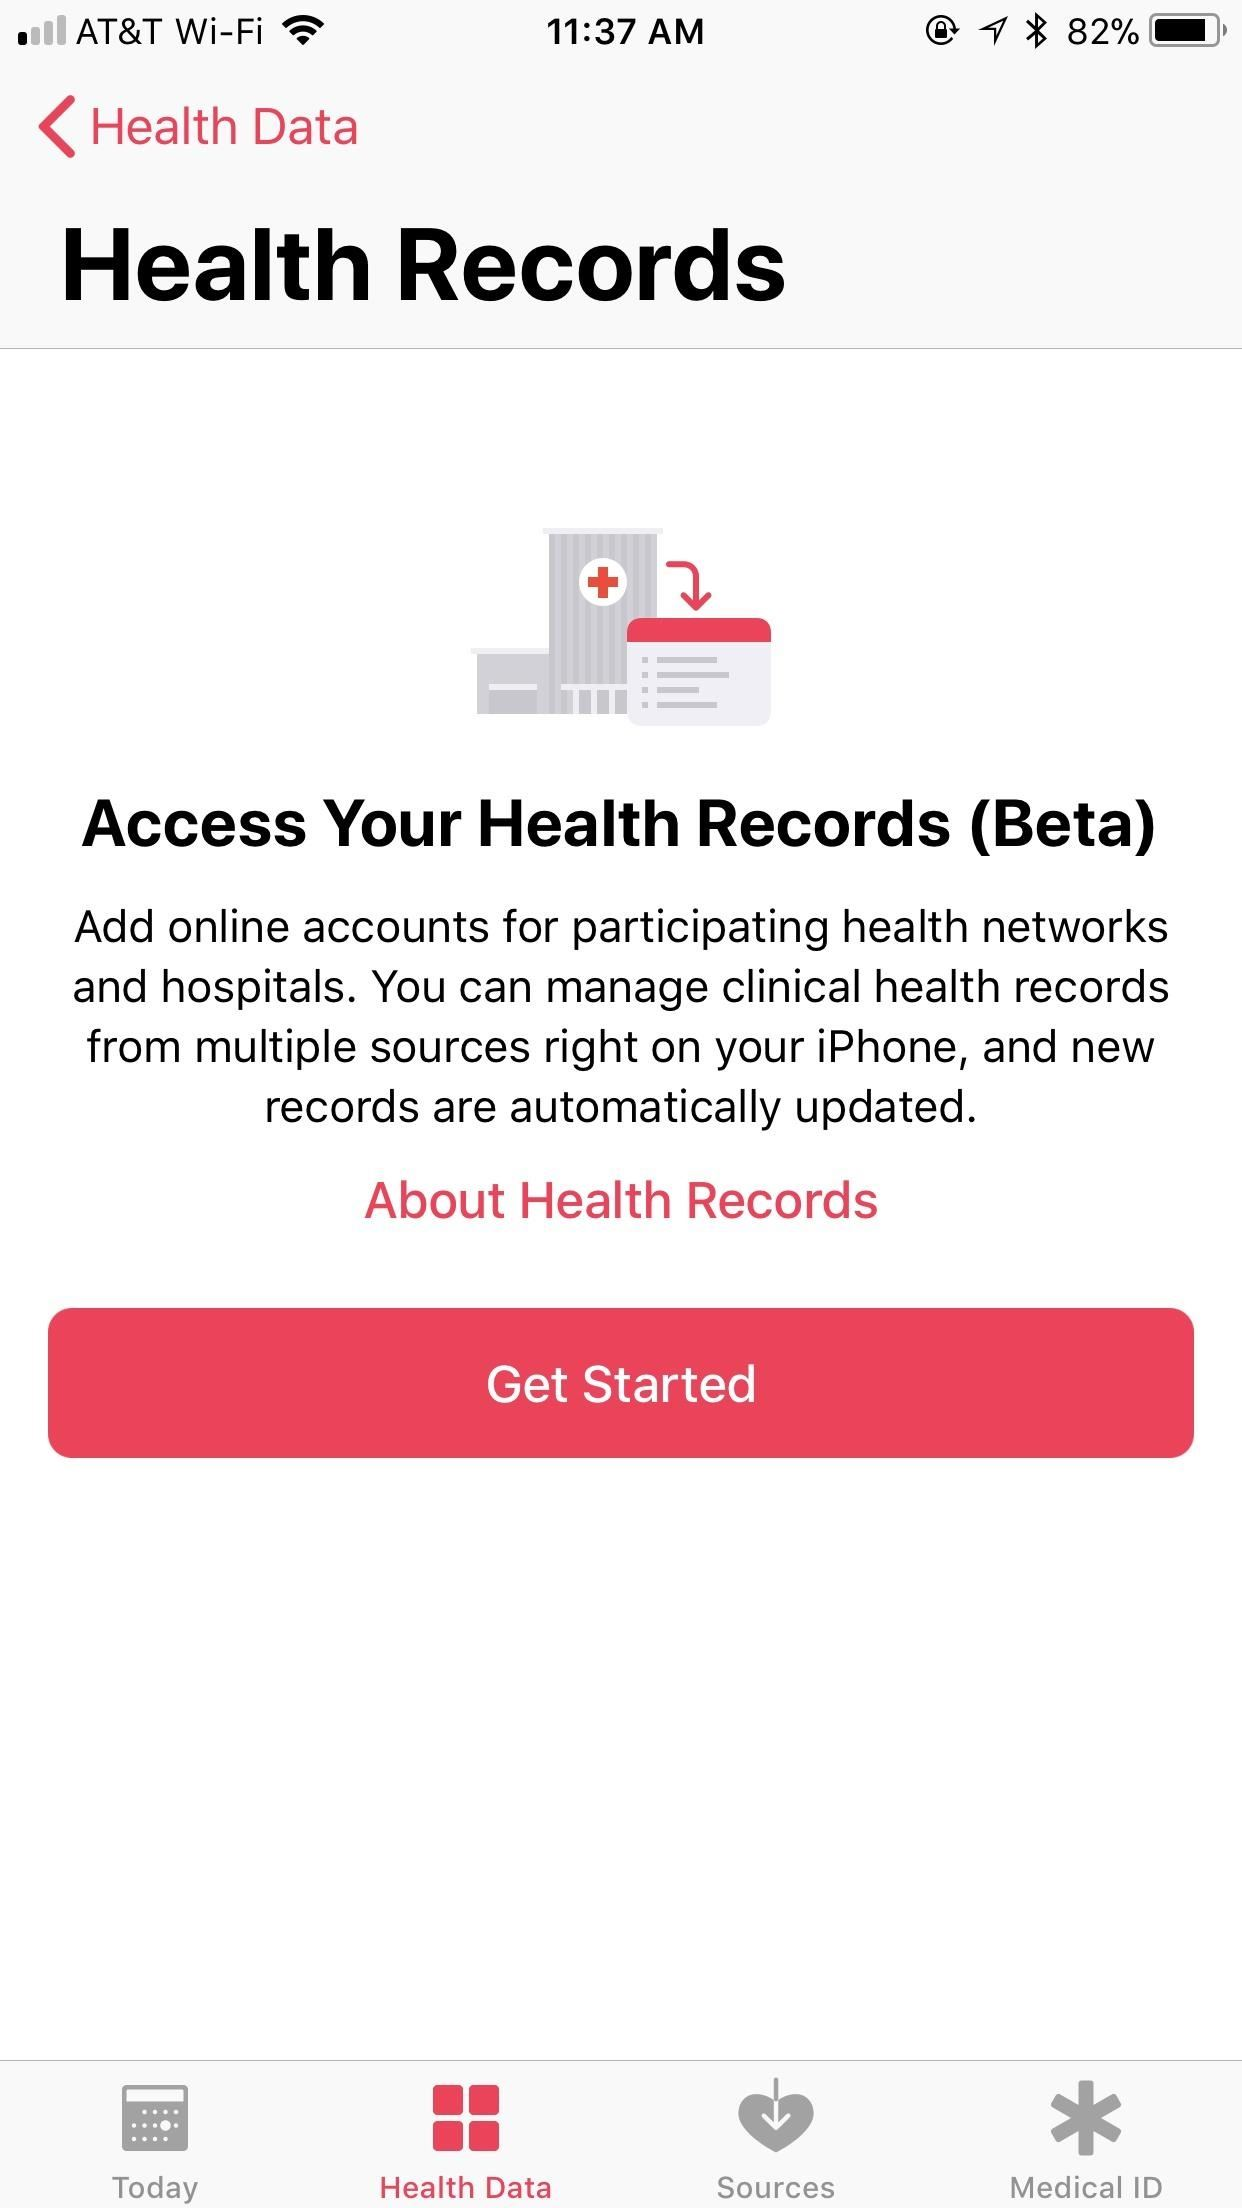 How to Import Your Health Records onto Your iPhone in iOS 11.3